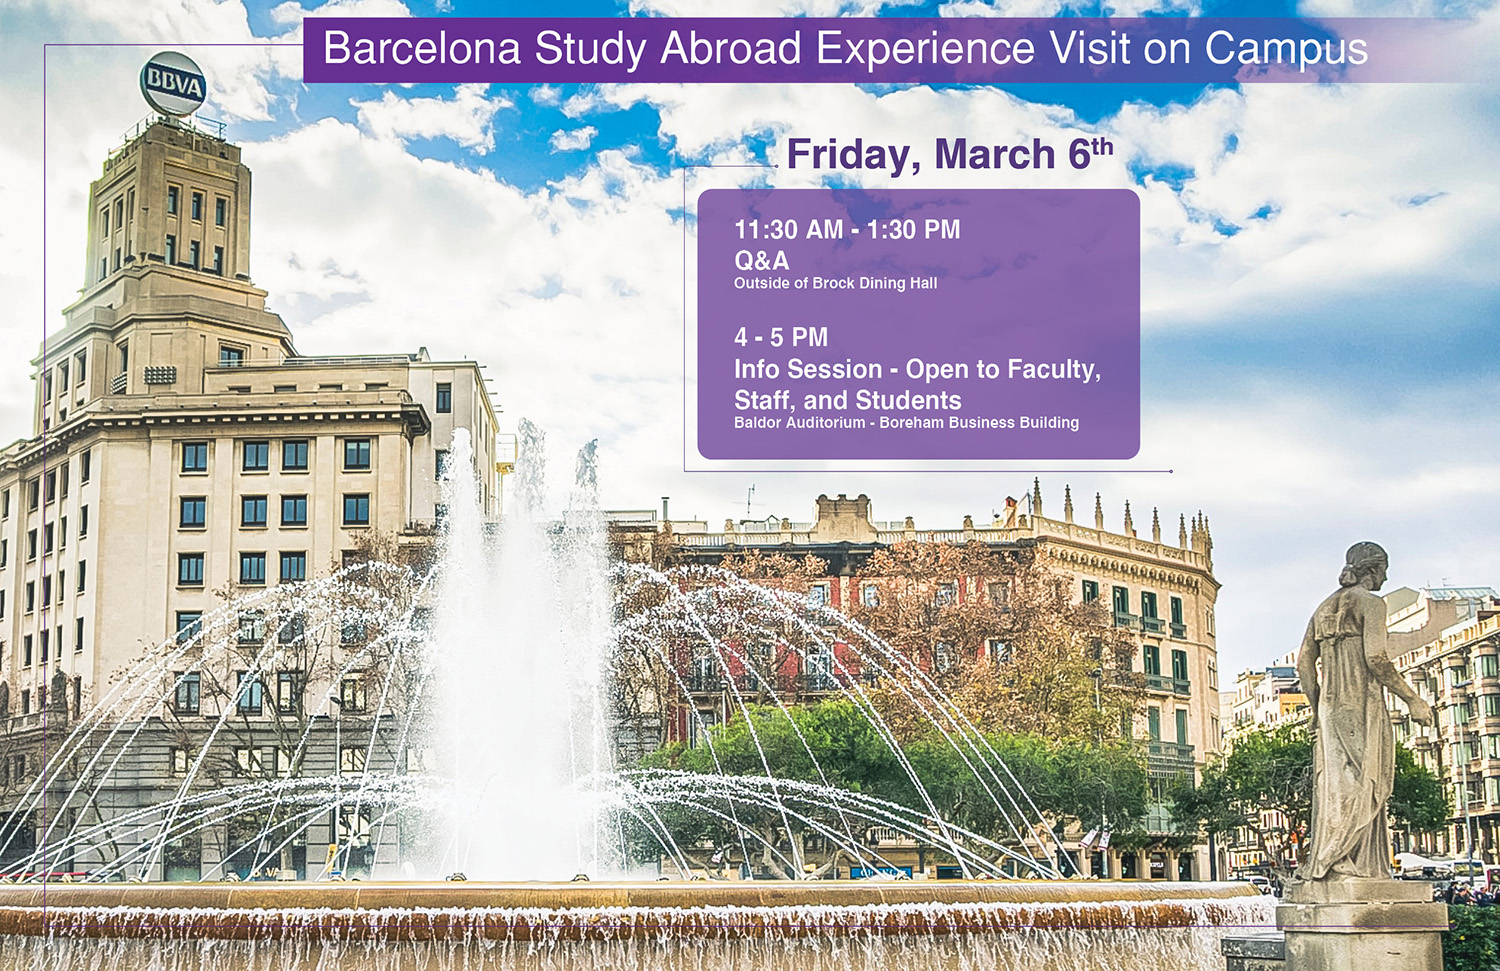 Barcelona Study Abroad Experience Q&A